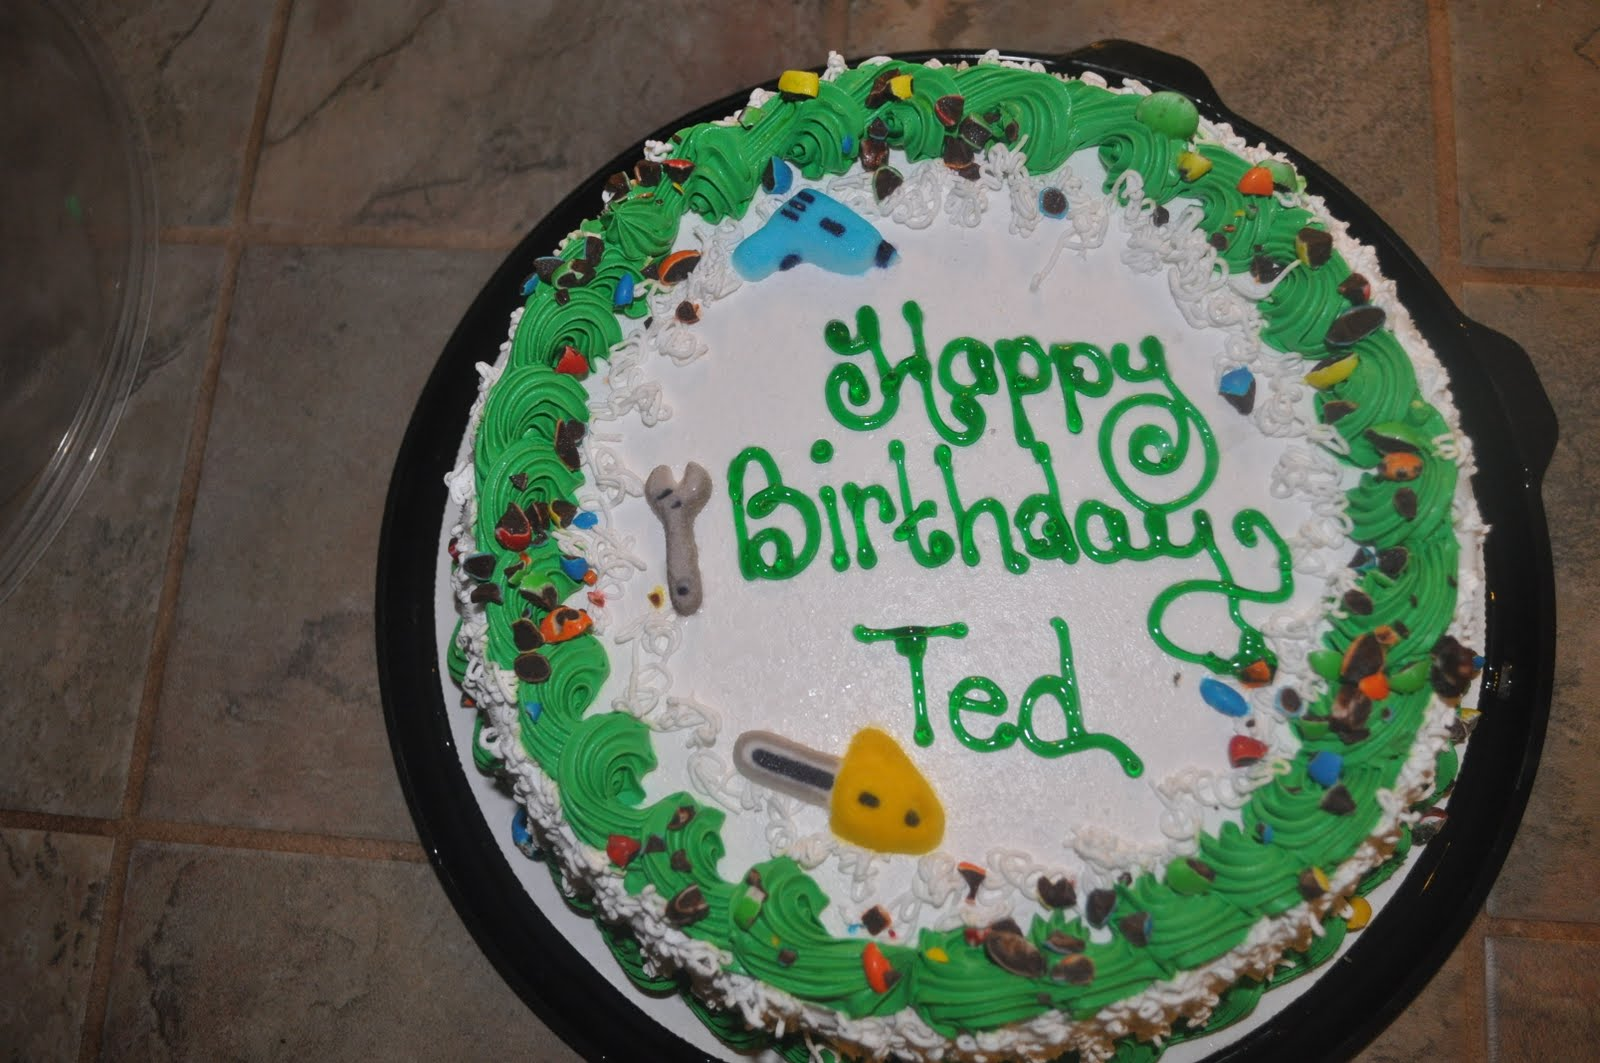 Ted Birthday Cakes